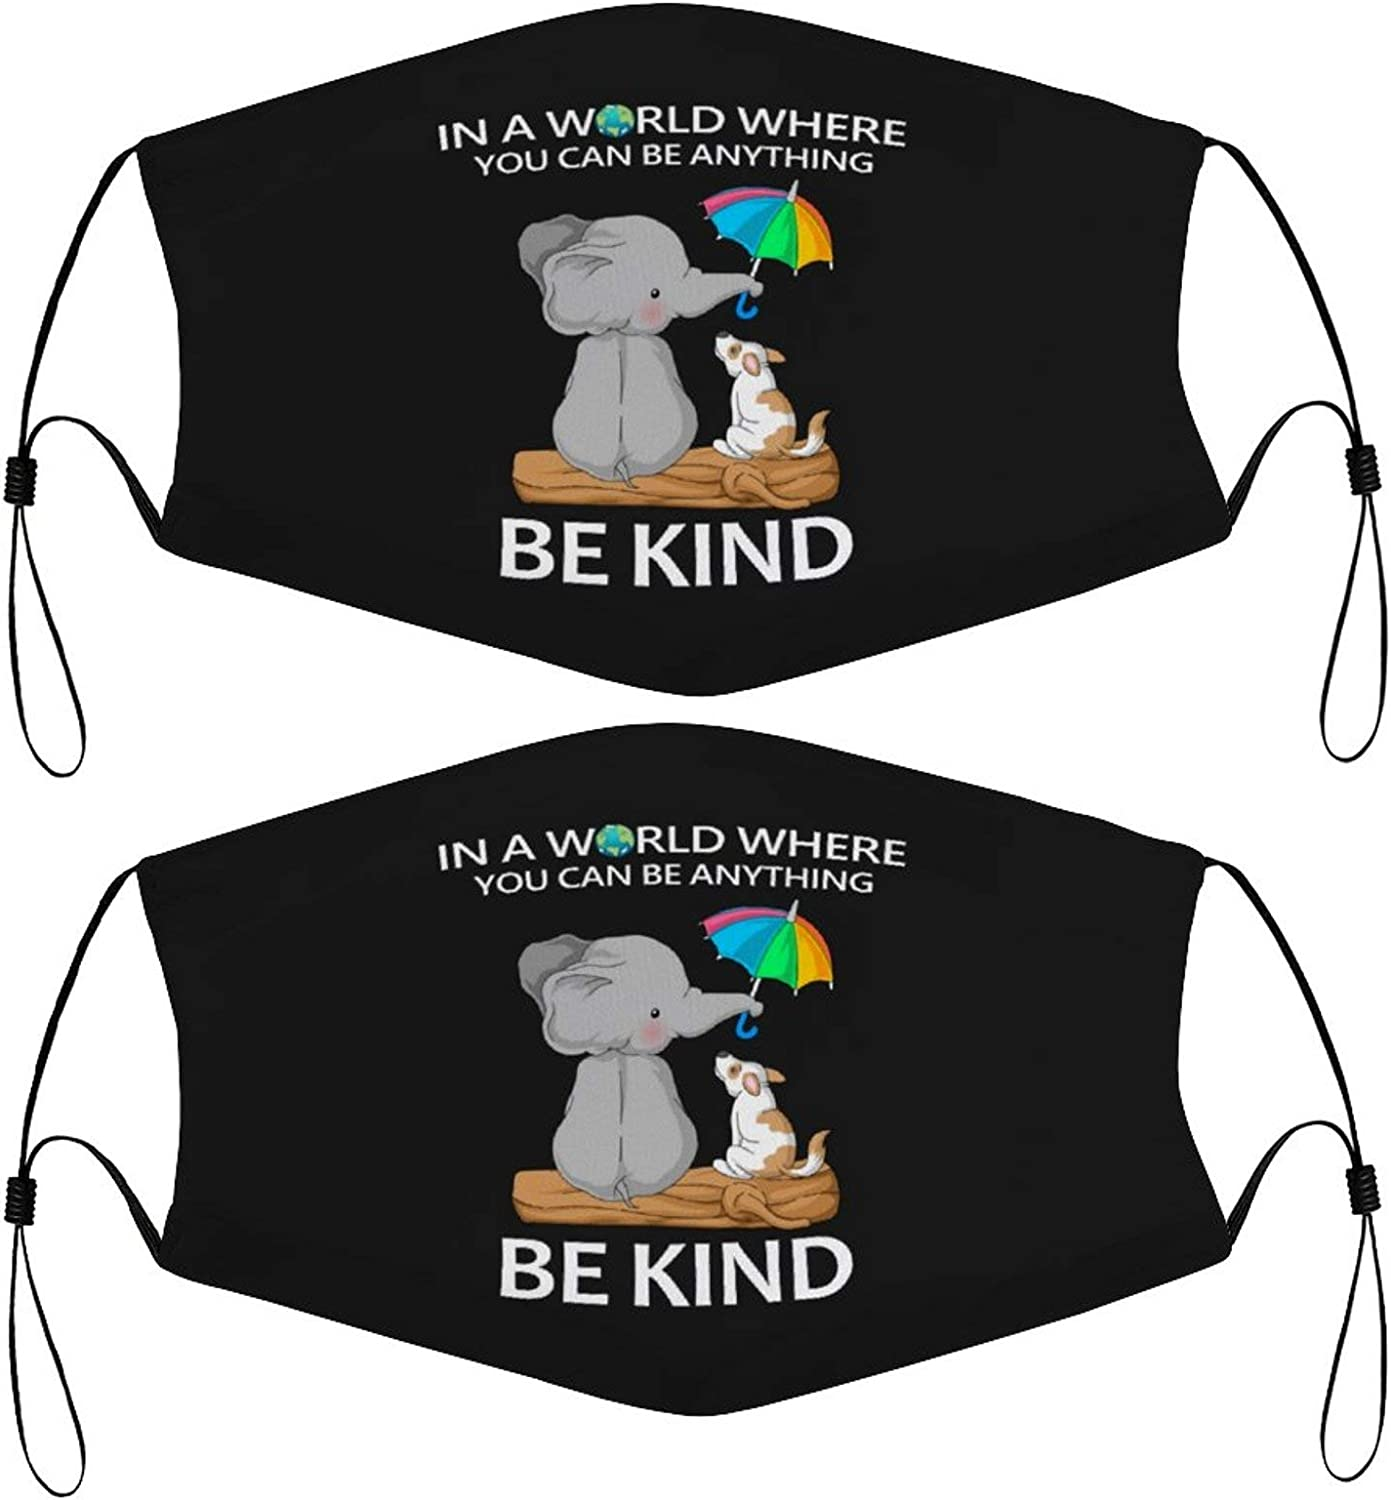 in A World Where You Can Be Anything Be Kind Kids Face Mask Set of 2 with 4 Filters Washable Reusable Adjustable Black Cloth Bandanas Scarf Neck Gaiters for Adult Men Women Fashion Designs